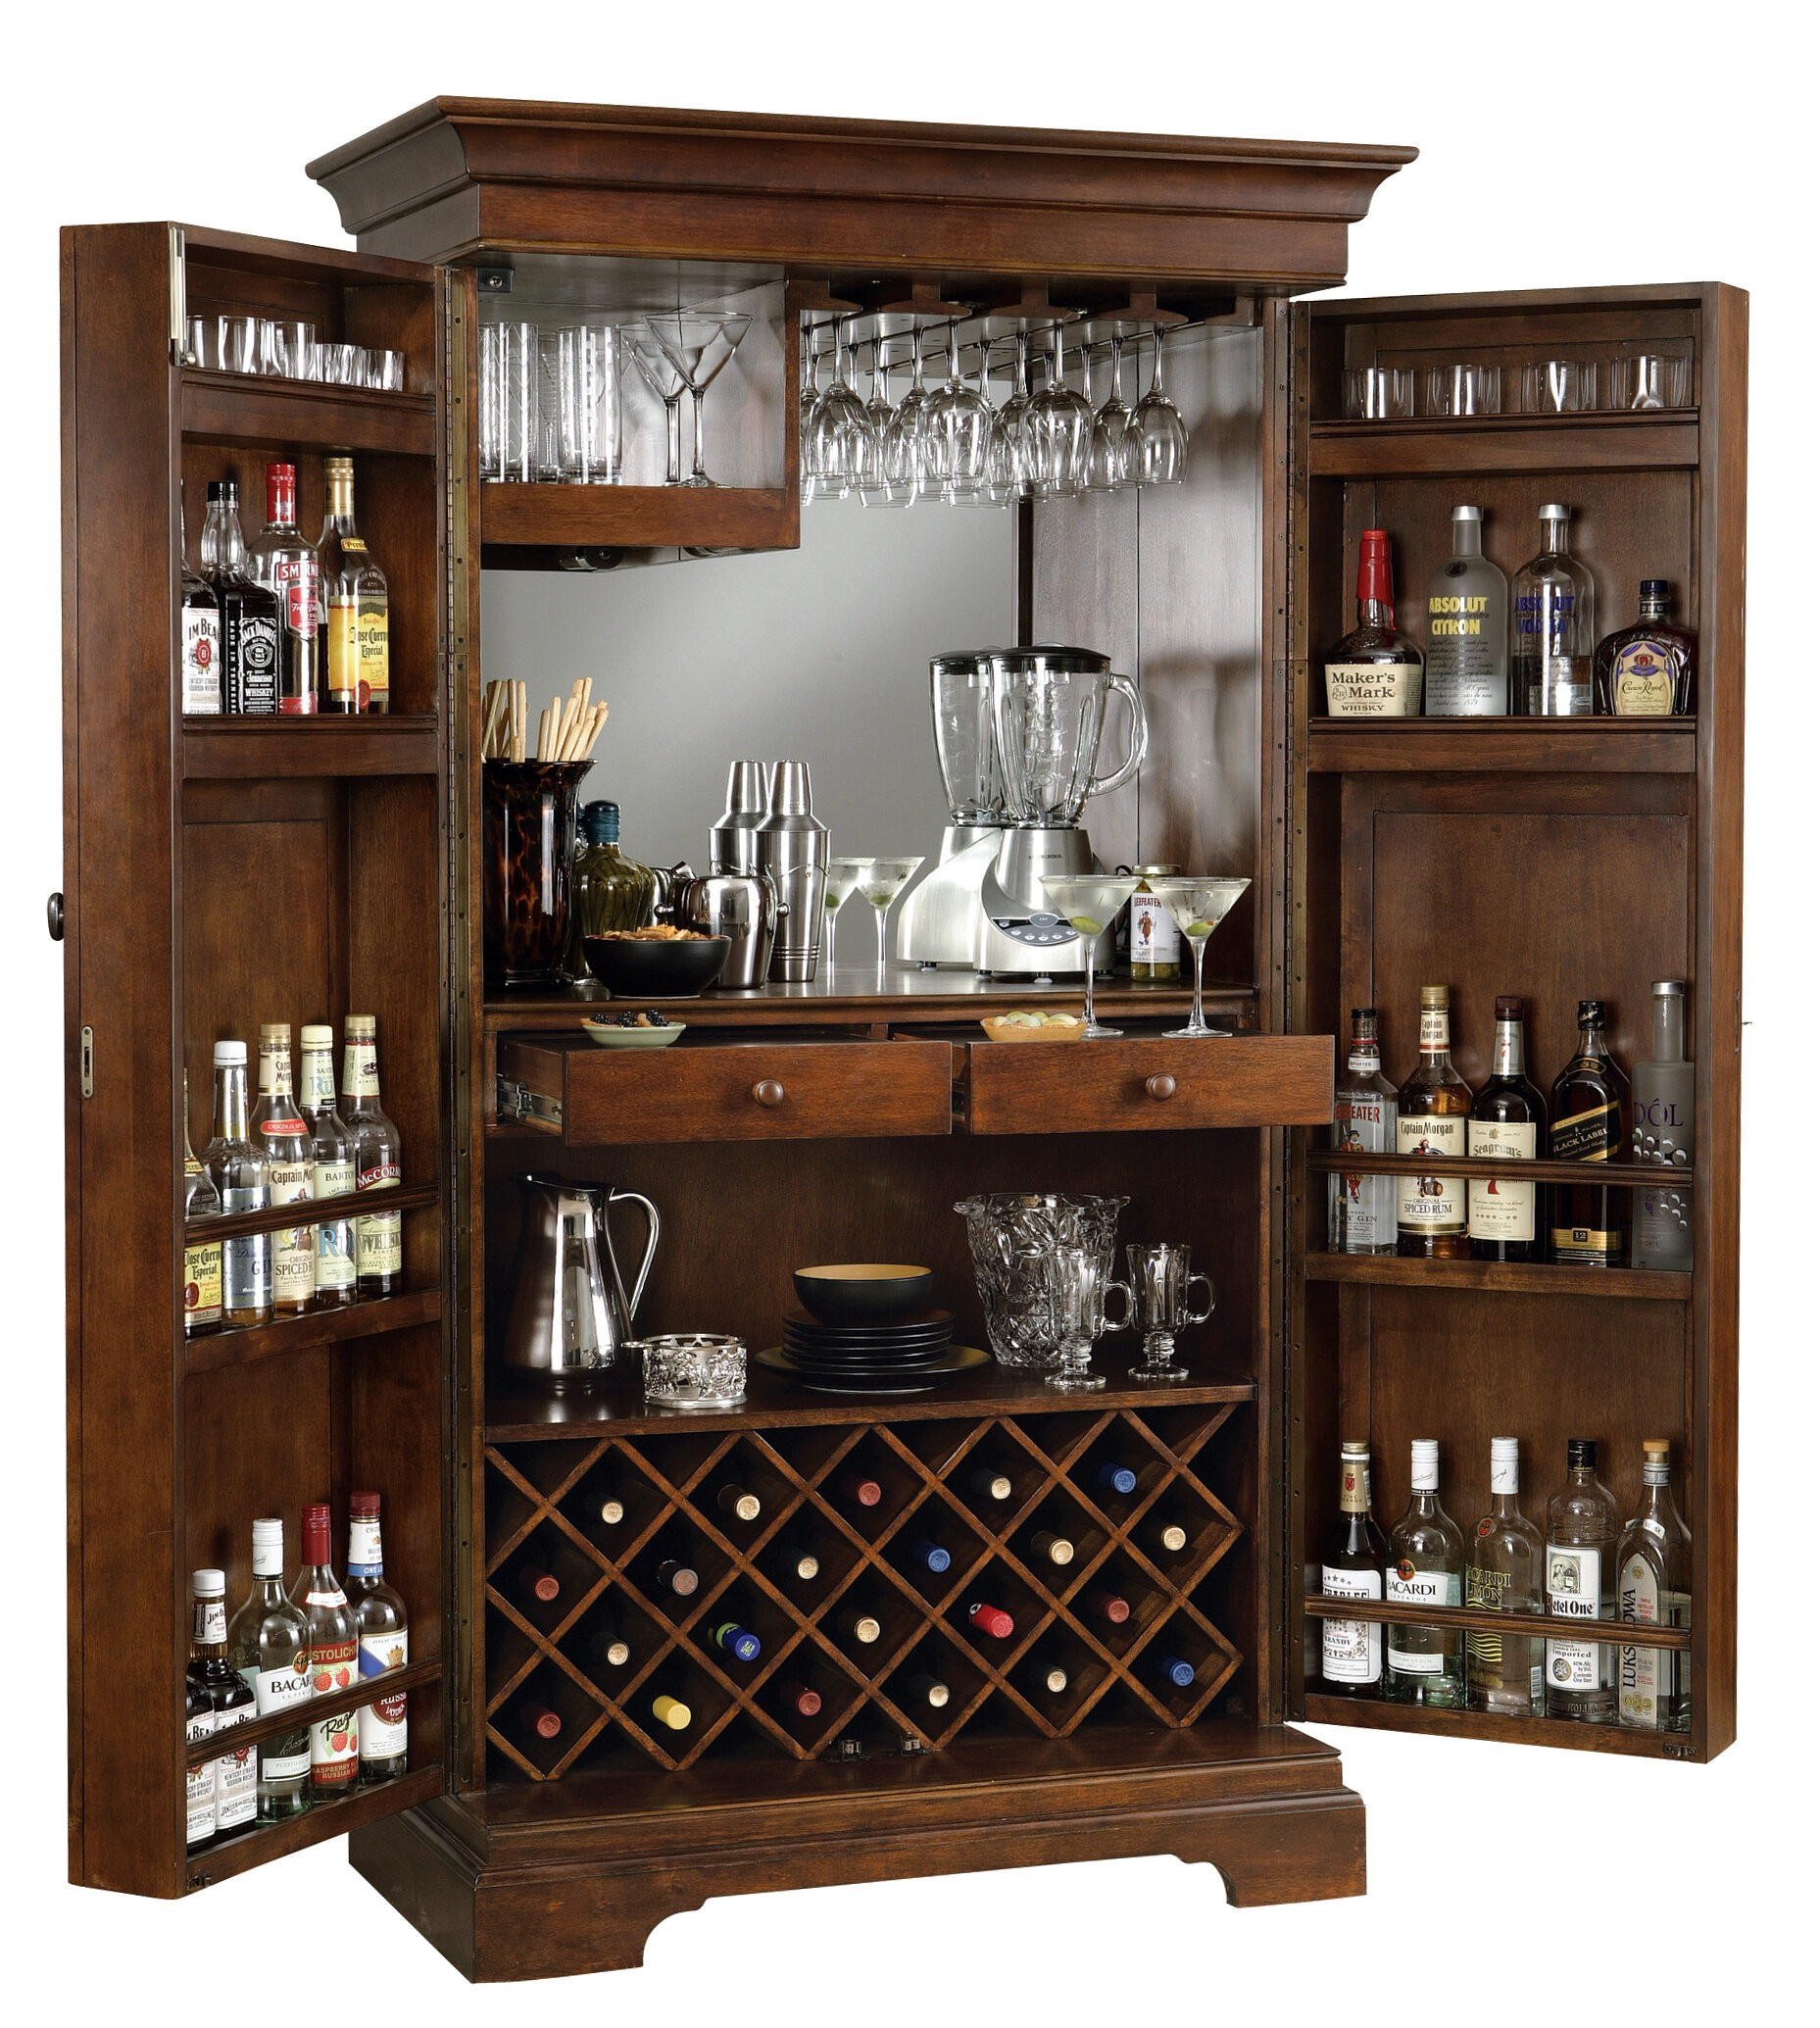 Charmant Howard Miller 695 064 Sonoma Hide A Bar Wine Cabinet